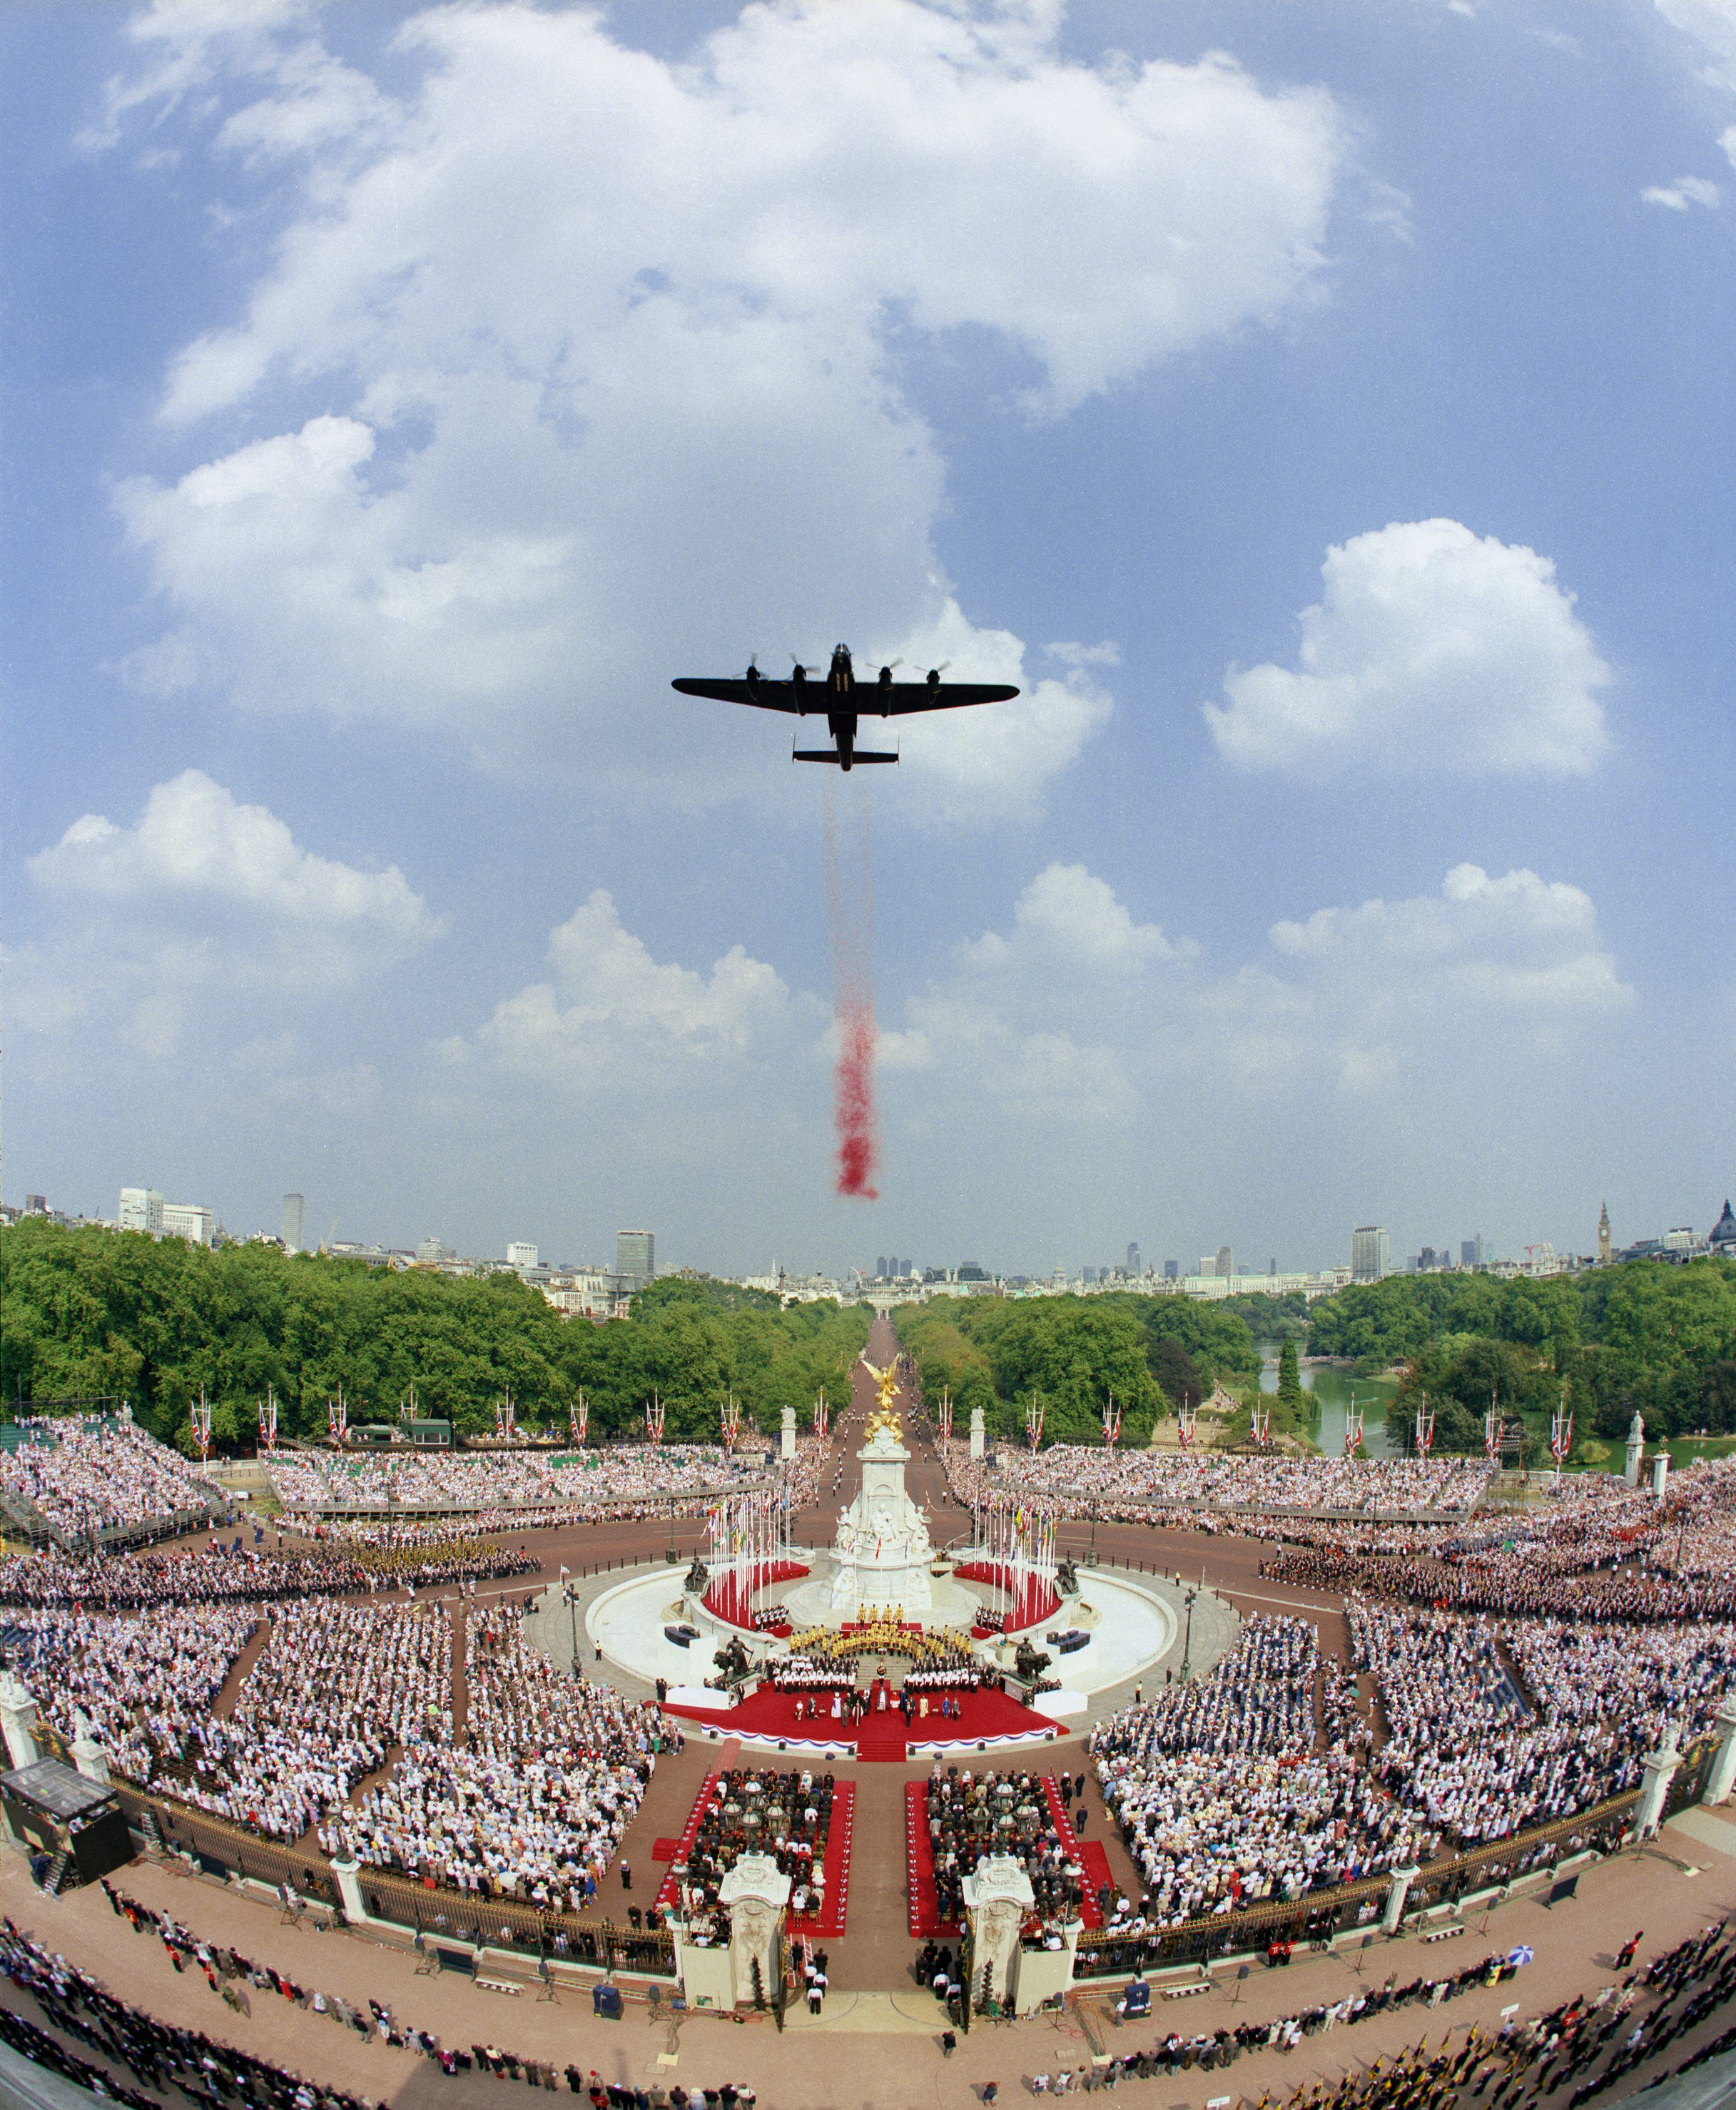 A Lancaster from the RAF Battle of Britain Memorial Flight drops poppies over London during the 50th Anniversary of the VE Day Celebrations in 1995.